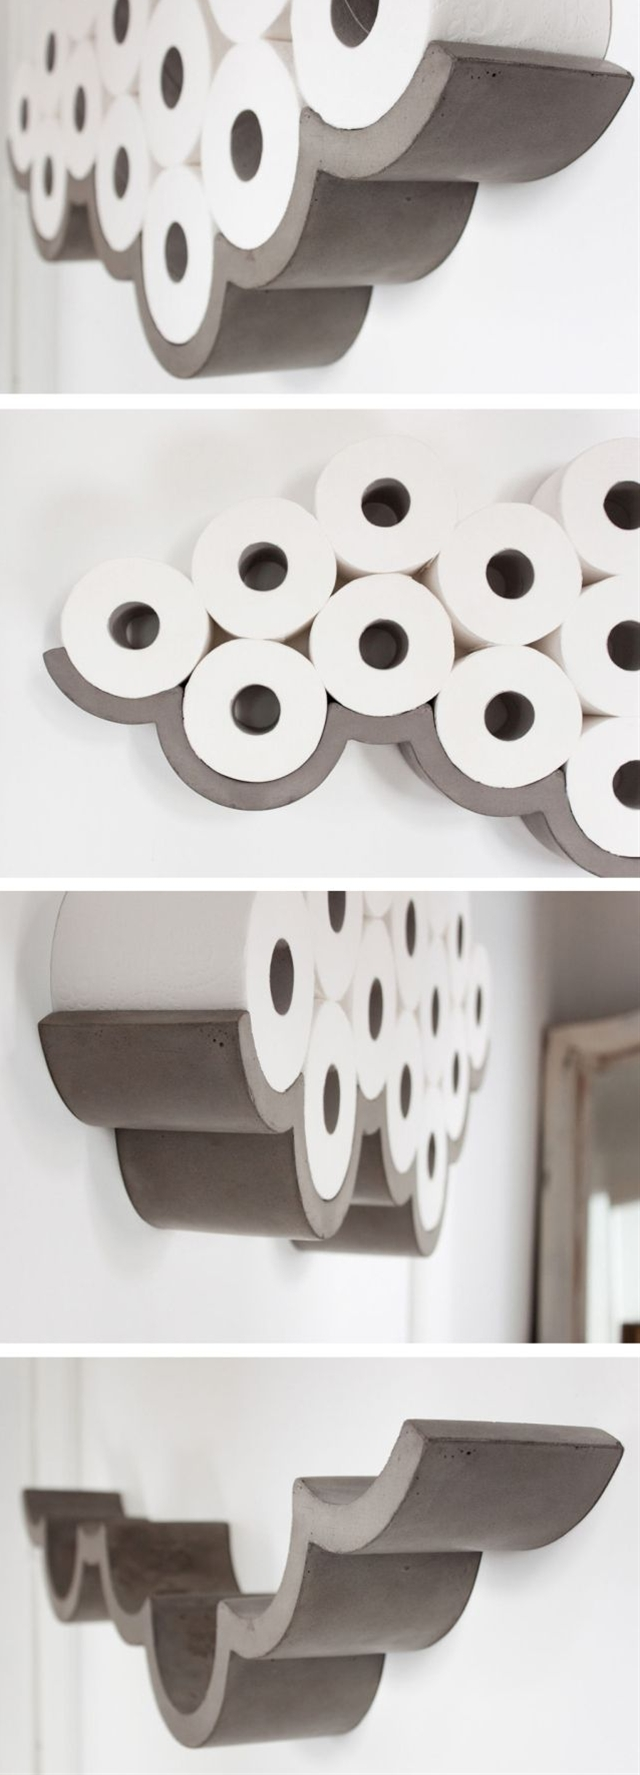 21Feb2015 Awesome Products: Cloud concrete toilet roll holder categories: Awesome Products, Design